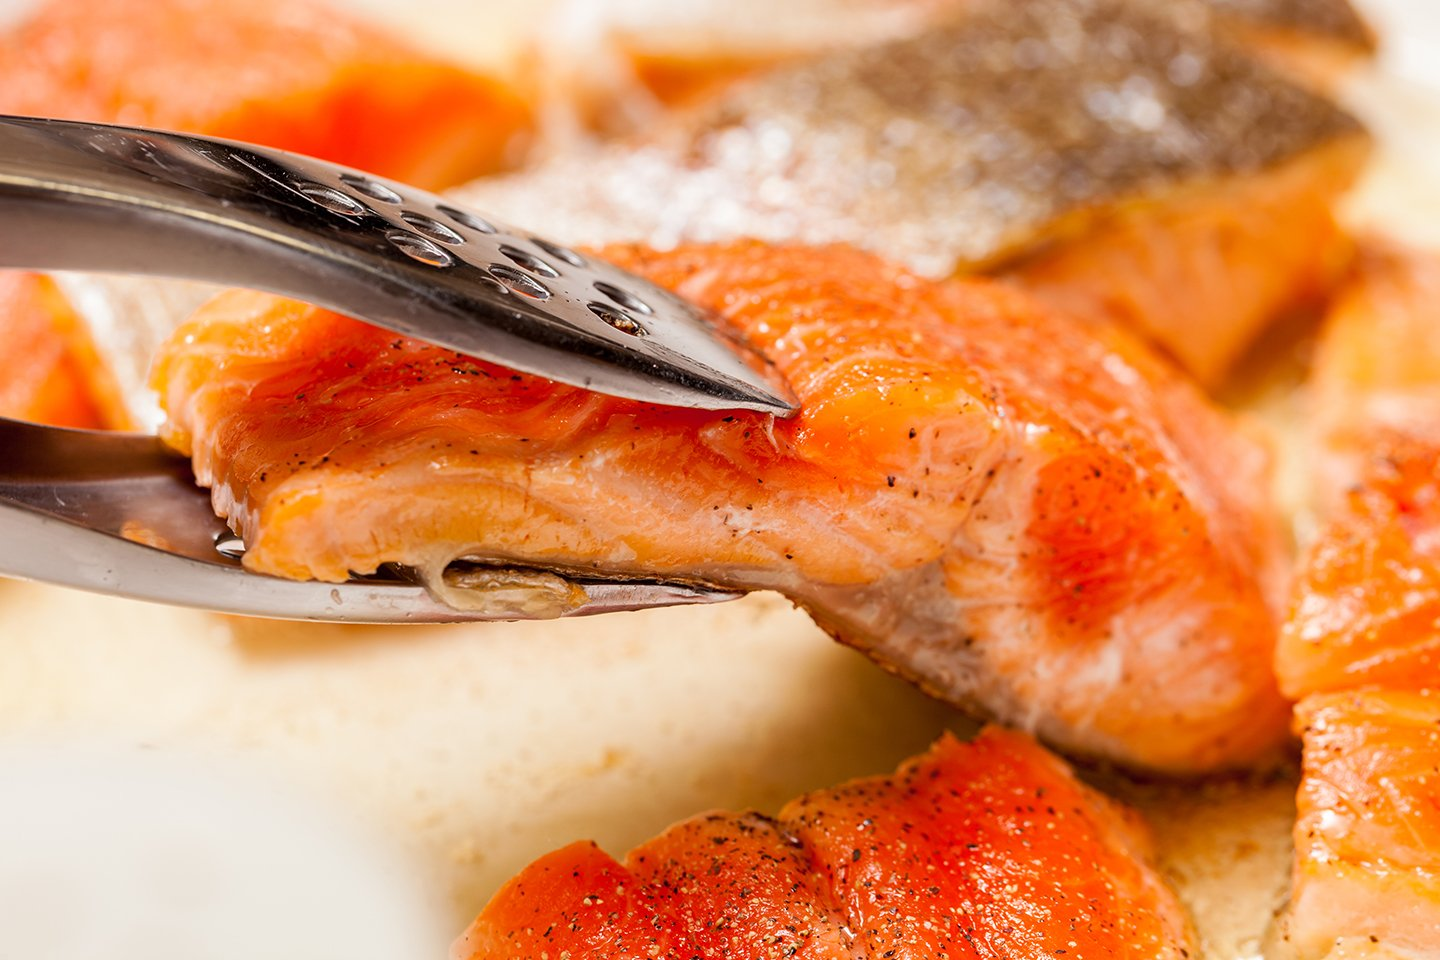 Pieces of grilled Salmon being turned with metal tongs